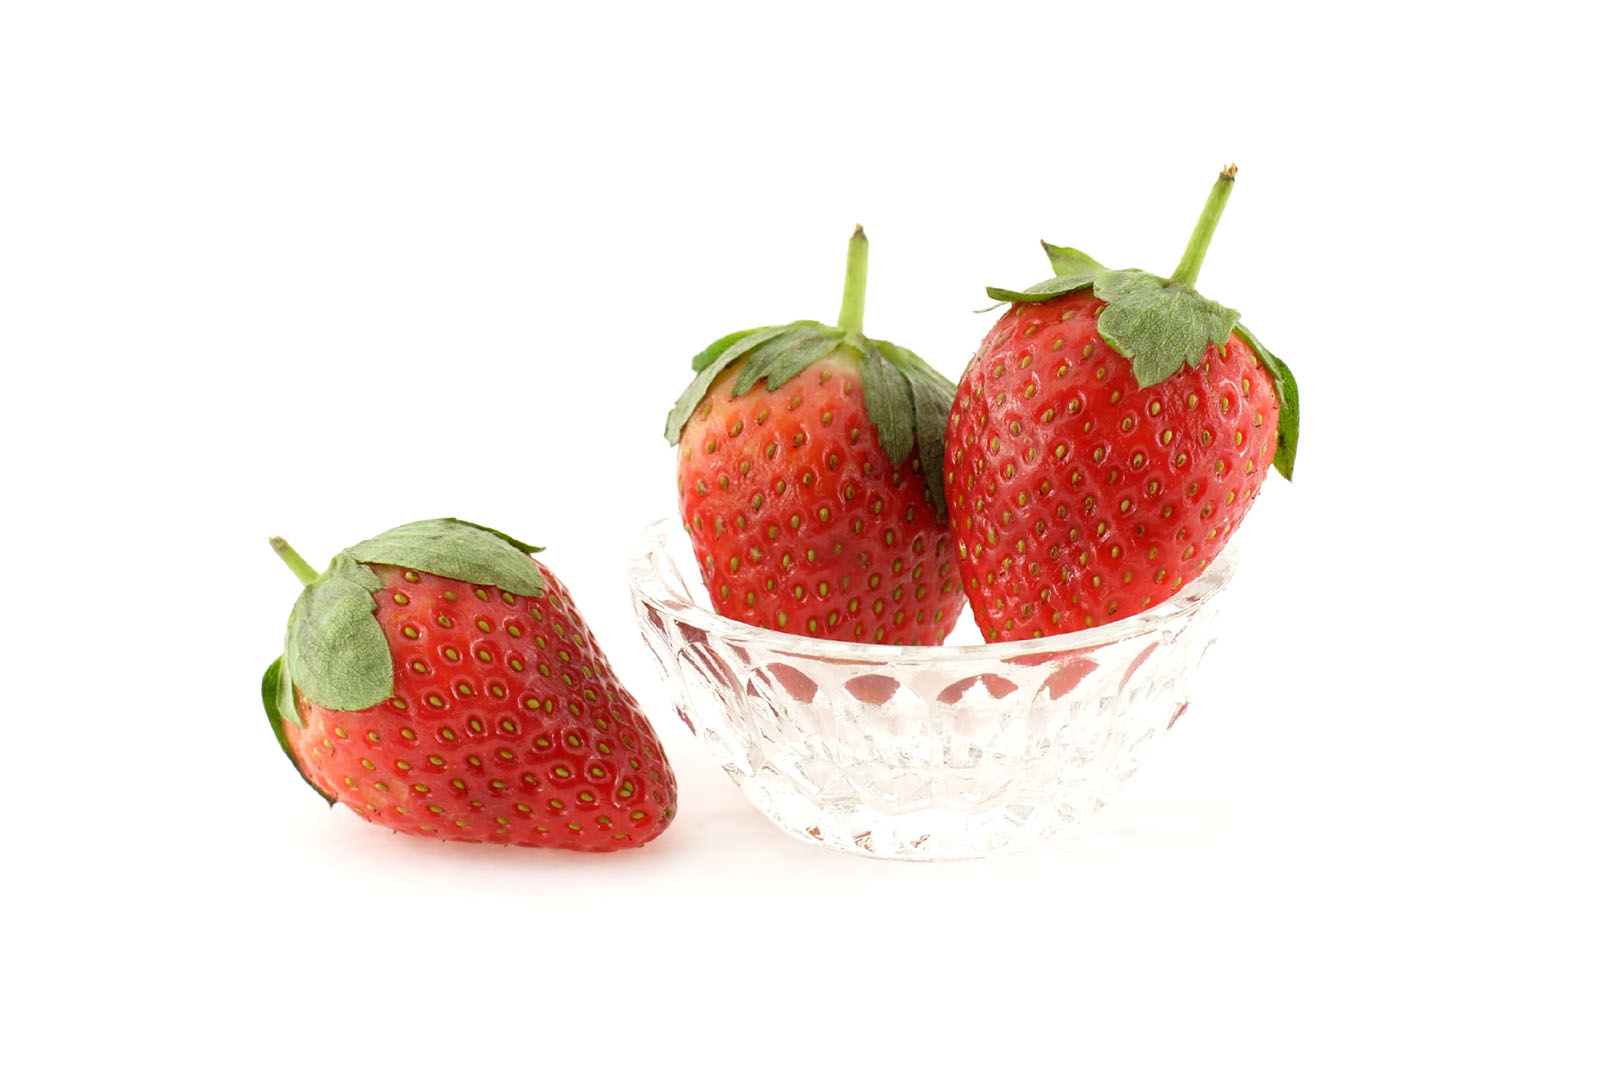 Strawberry close-up high-definition 11010